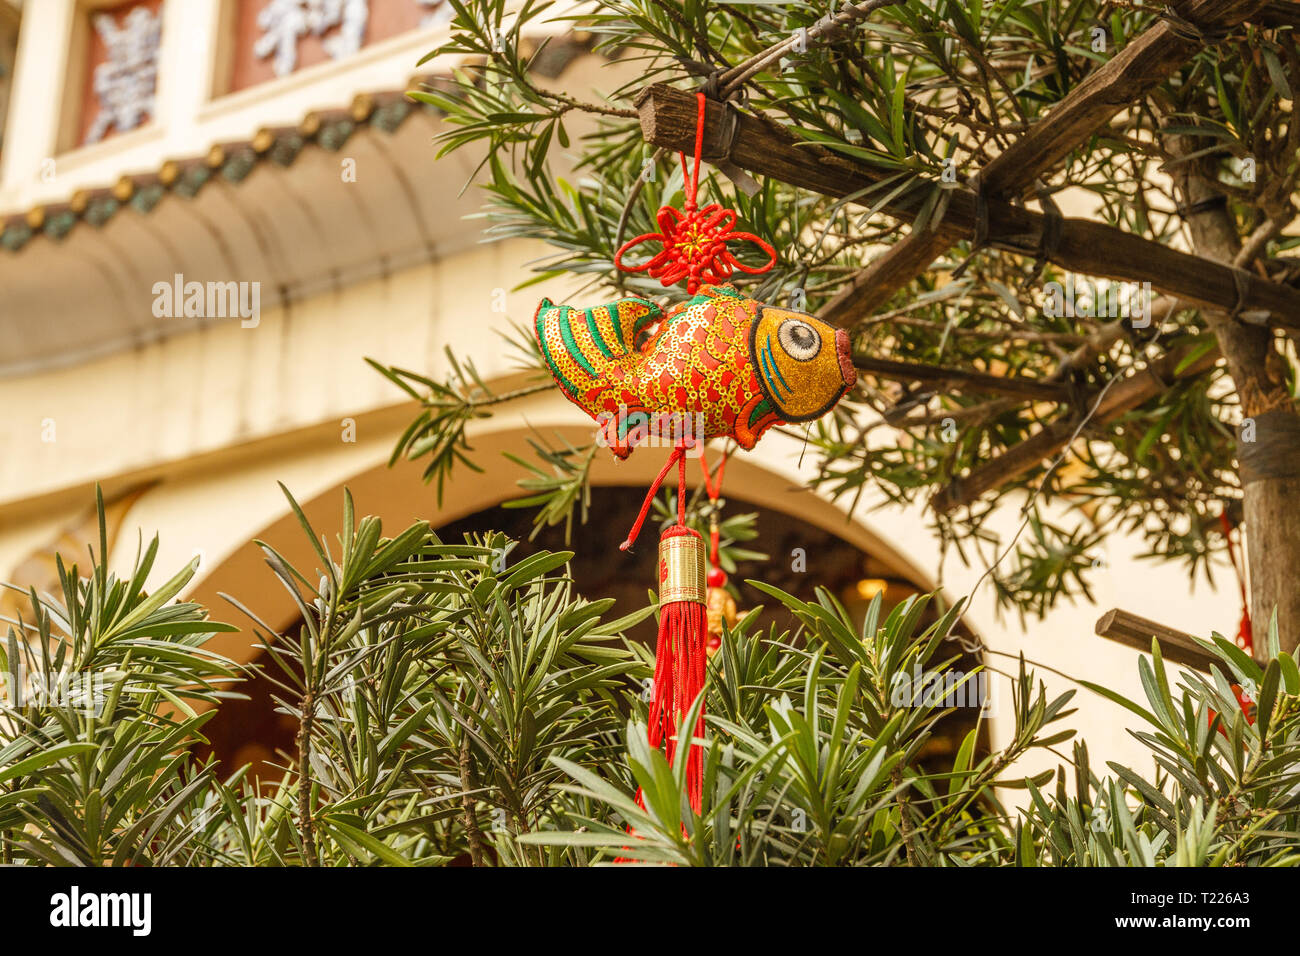 Red and gold carps hanging near Buddhist temple in Old Quarter - decoration for celebrating Tet, Vietnamese new year in Hanoi, Vietnam. - Stock Image